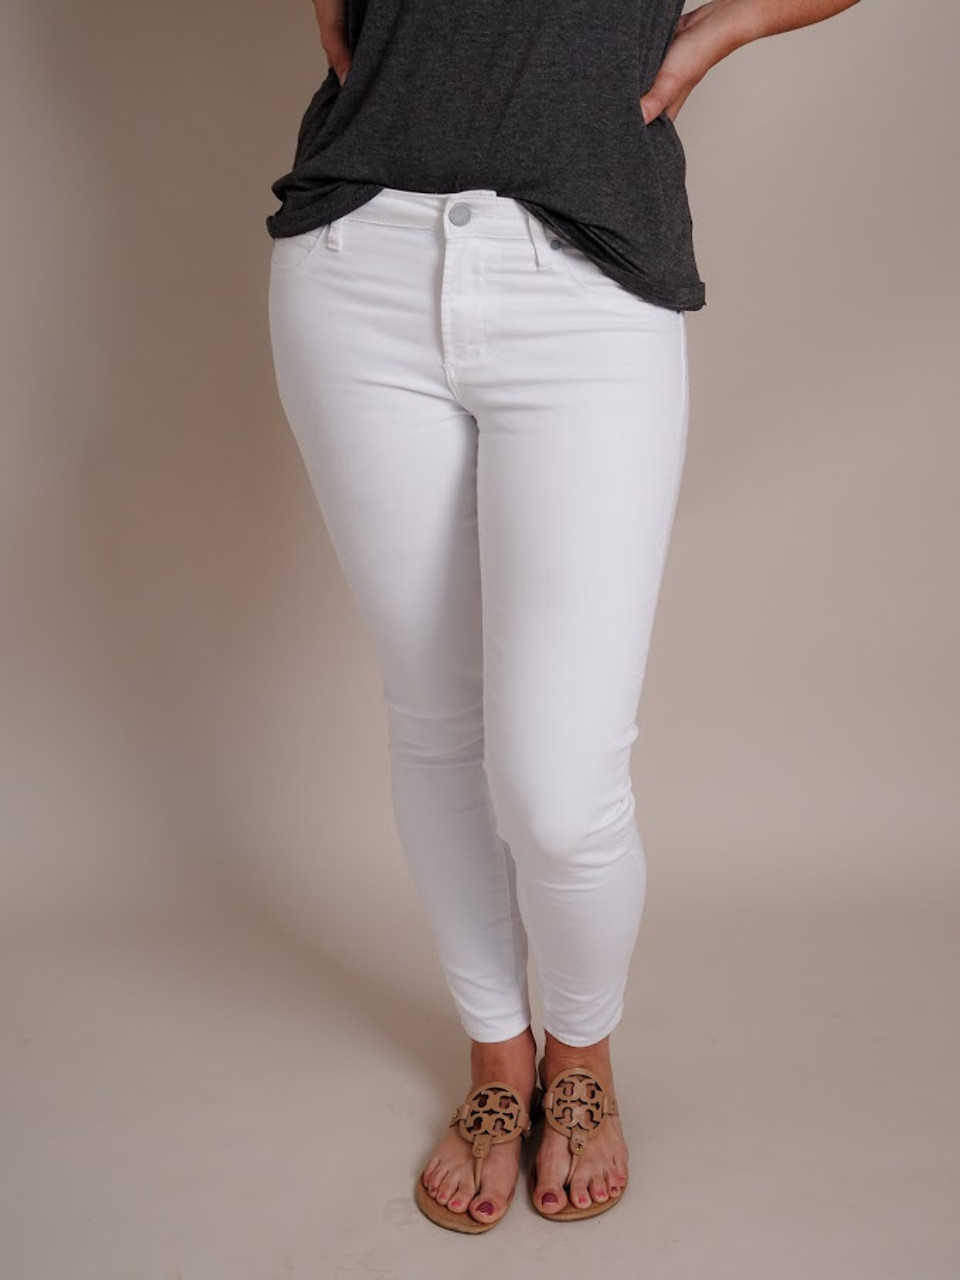 St. Kitts White Denim